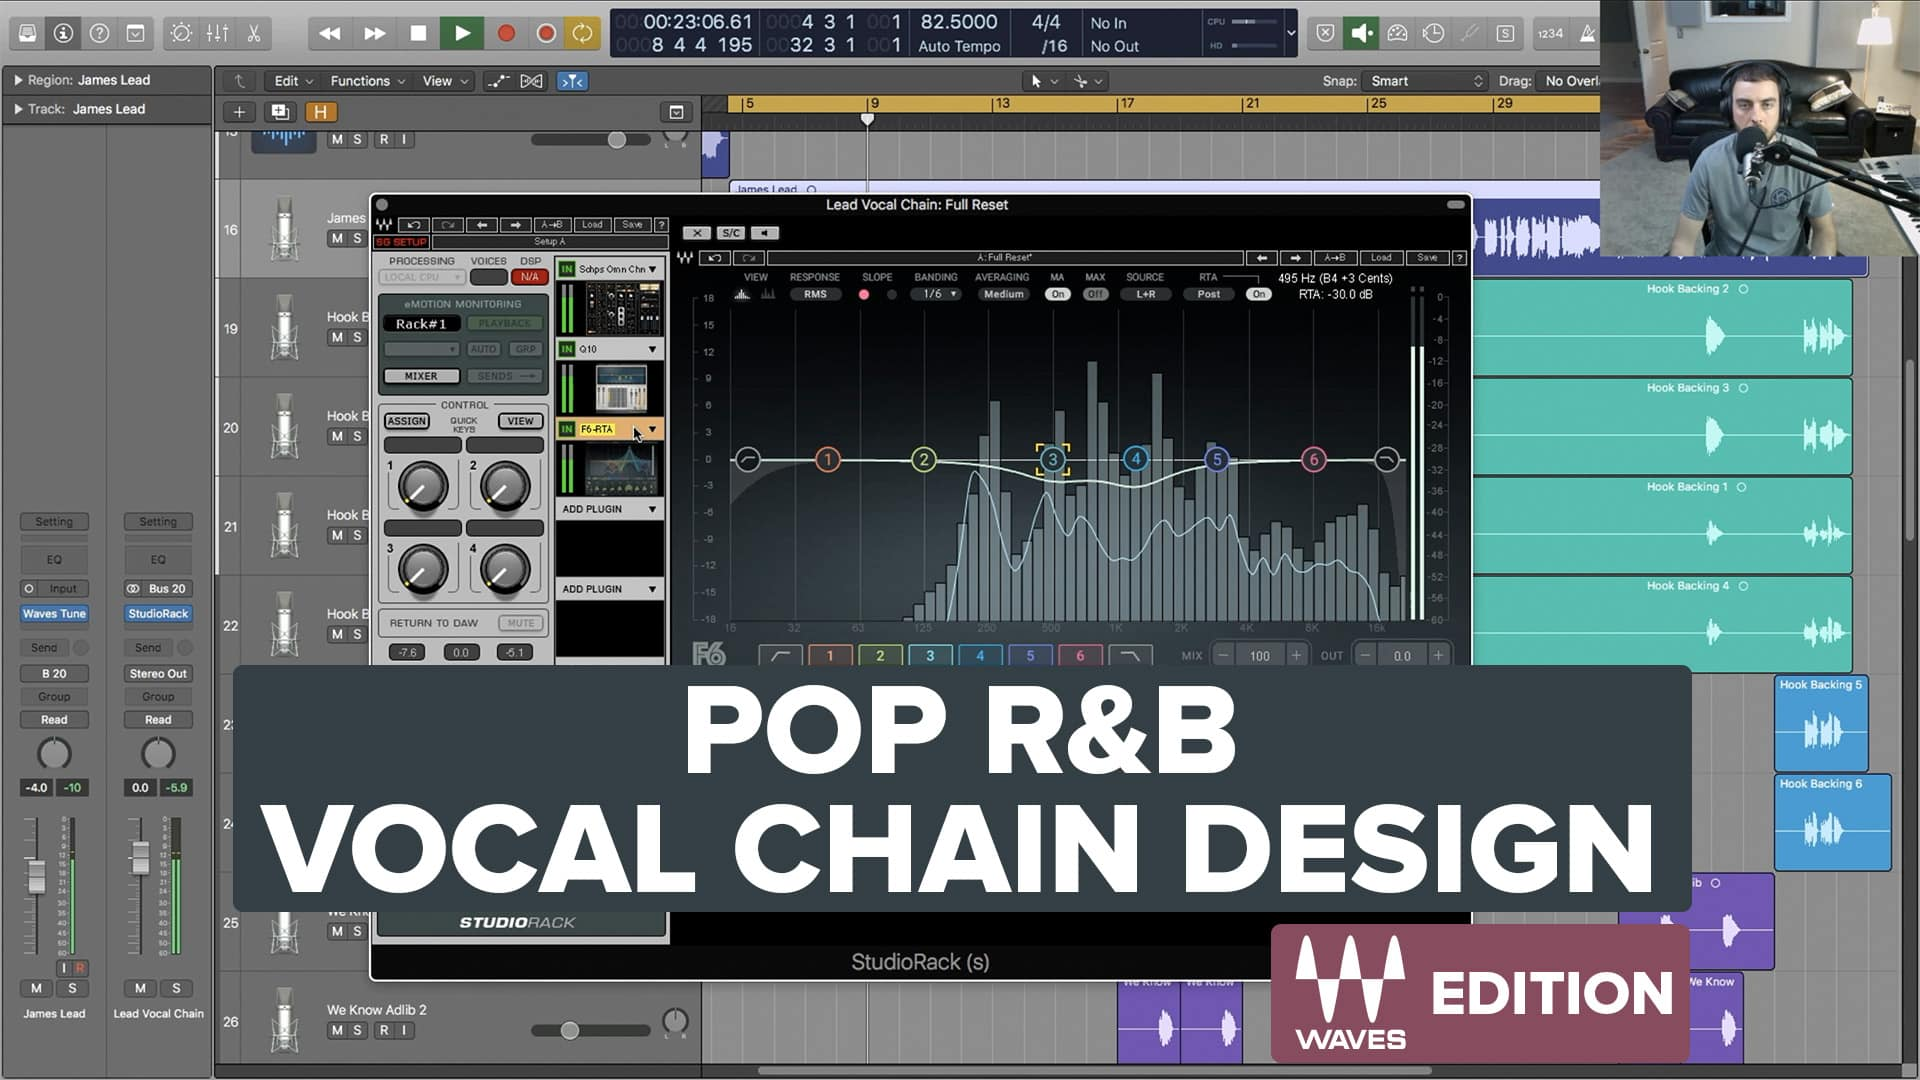 Pop R&B Vocal Chain Design - Free Tutorial Series (Preset